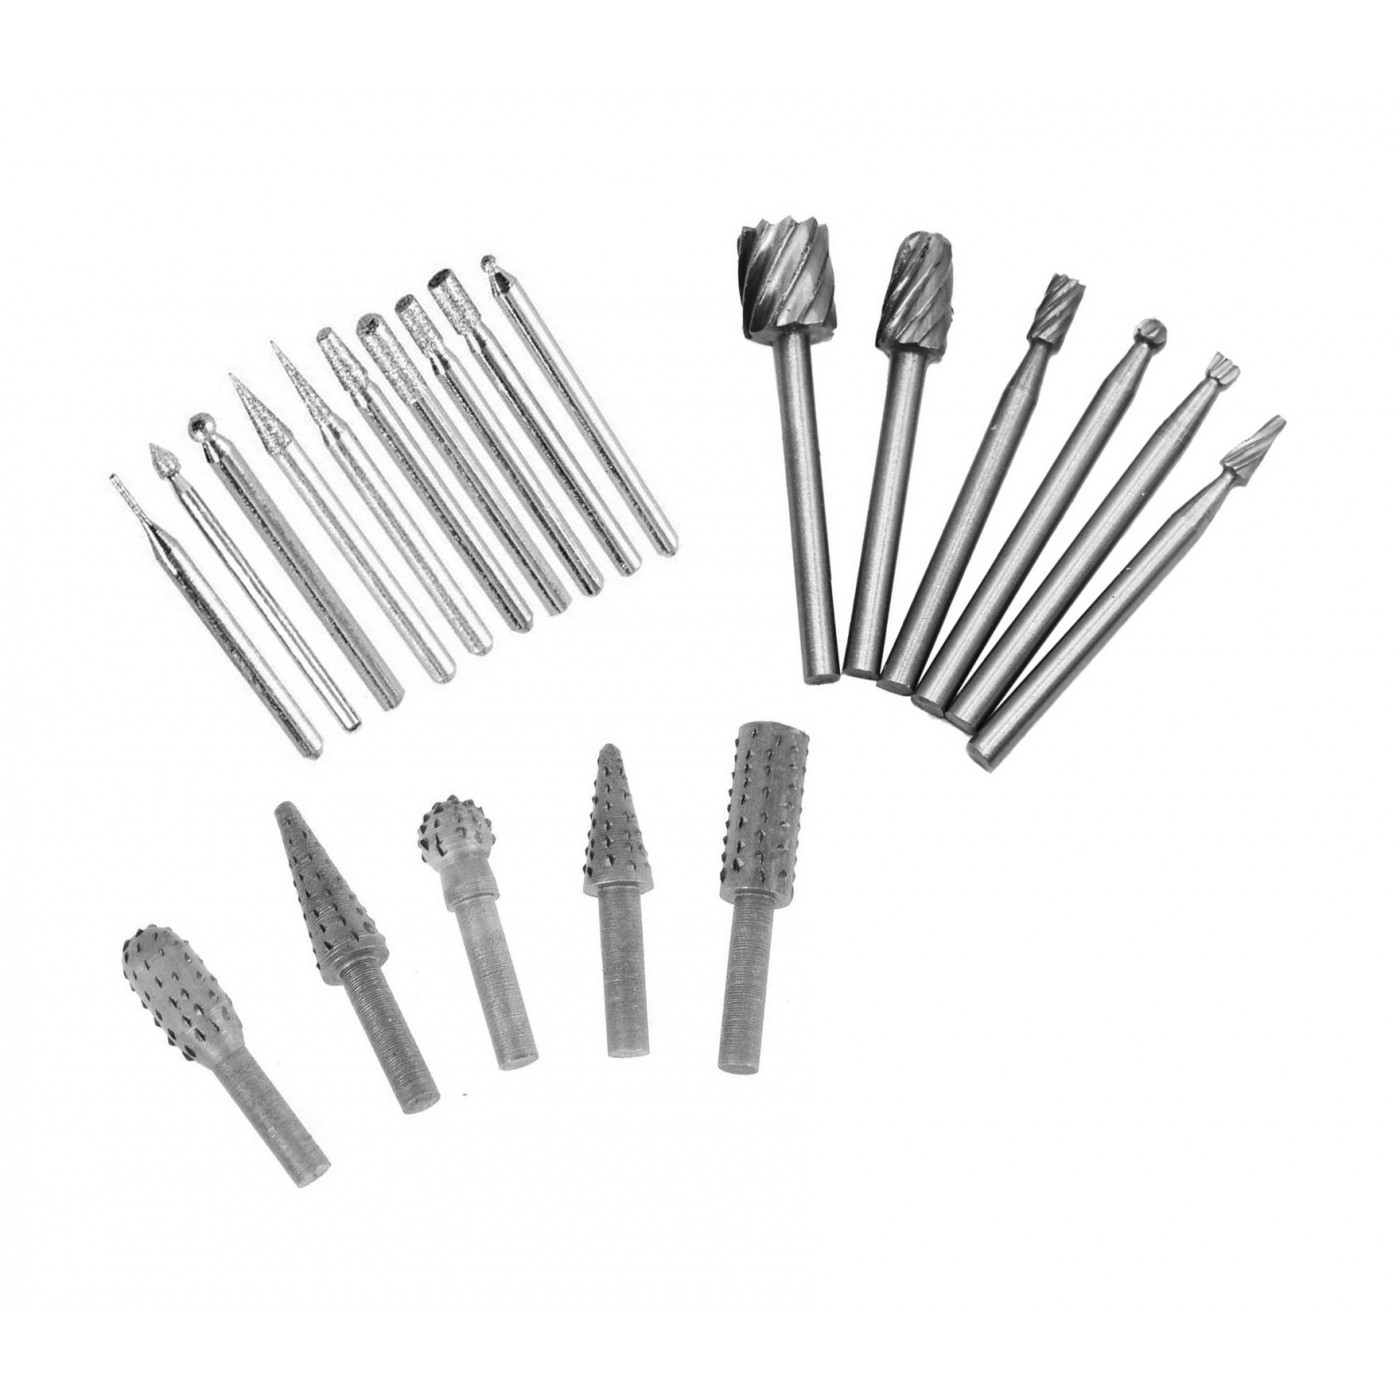 Set milling cutters & graters, 21 pieces